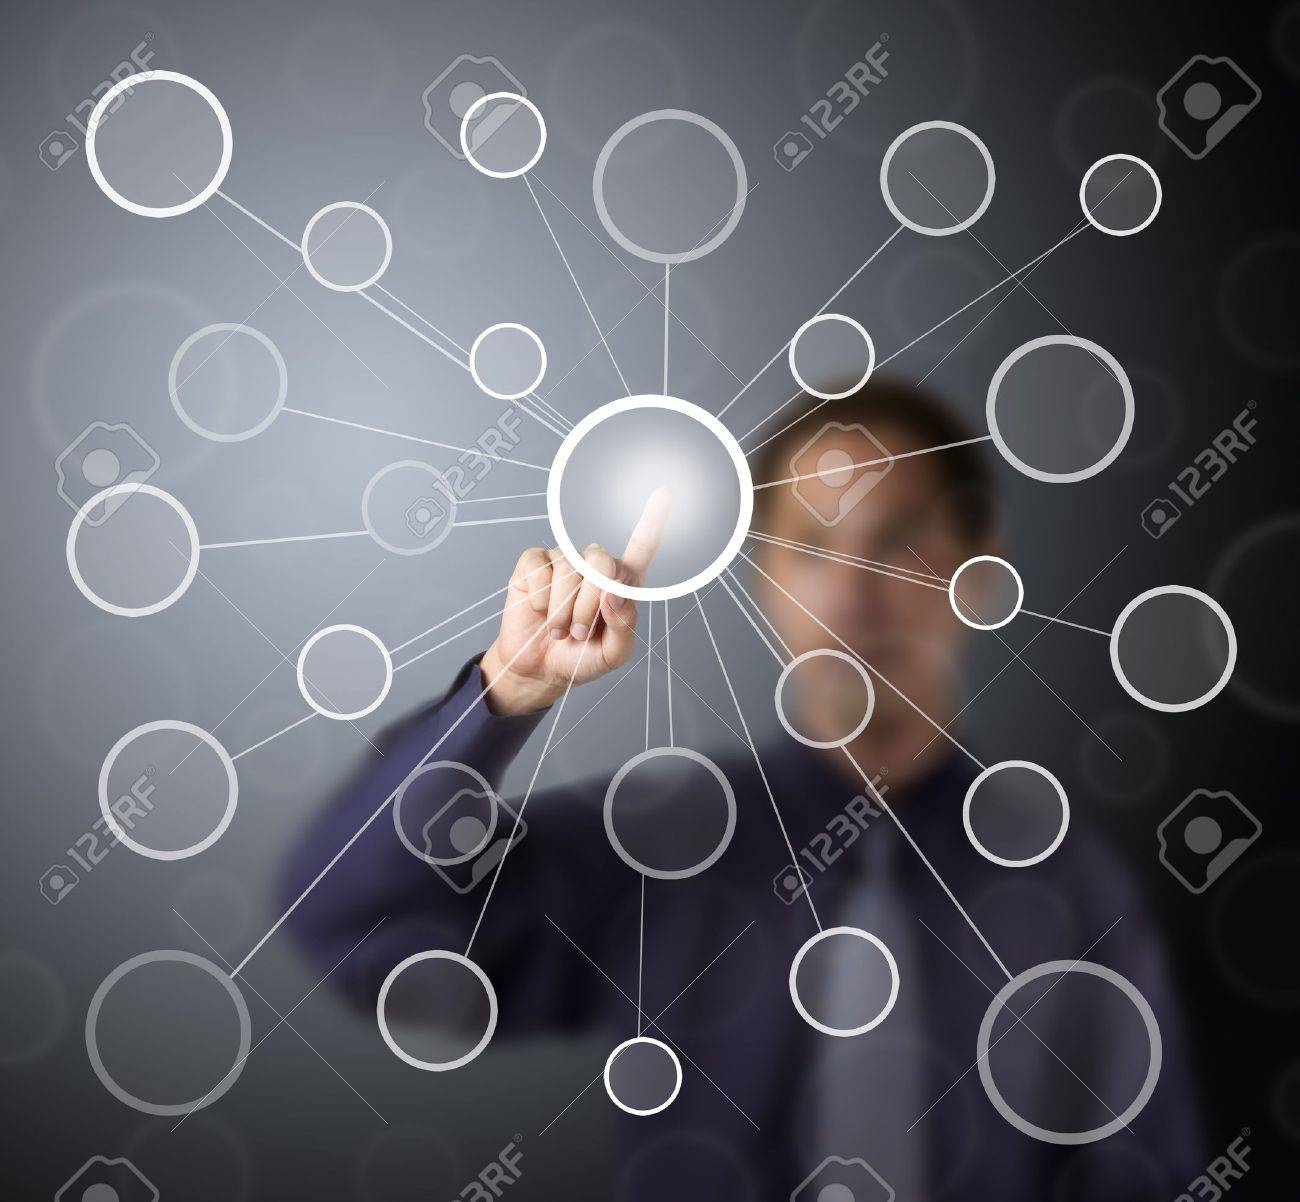 business man push centric link circle touch screen button Stock Photo - 13225214